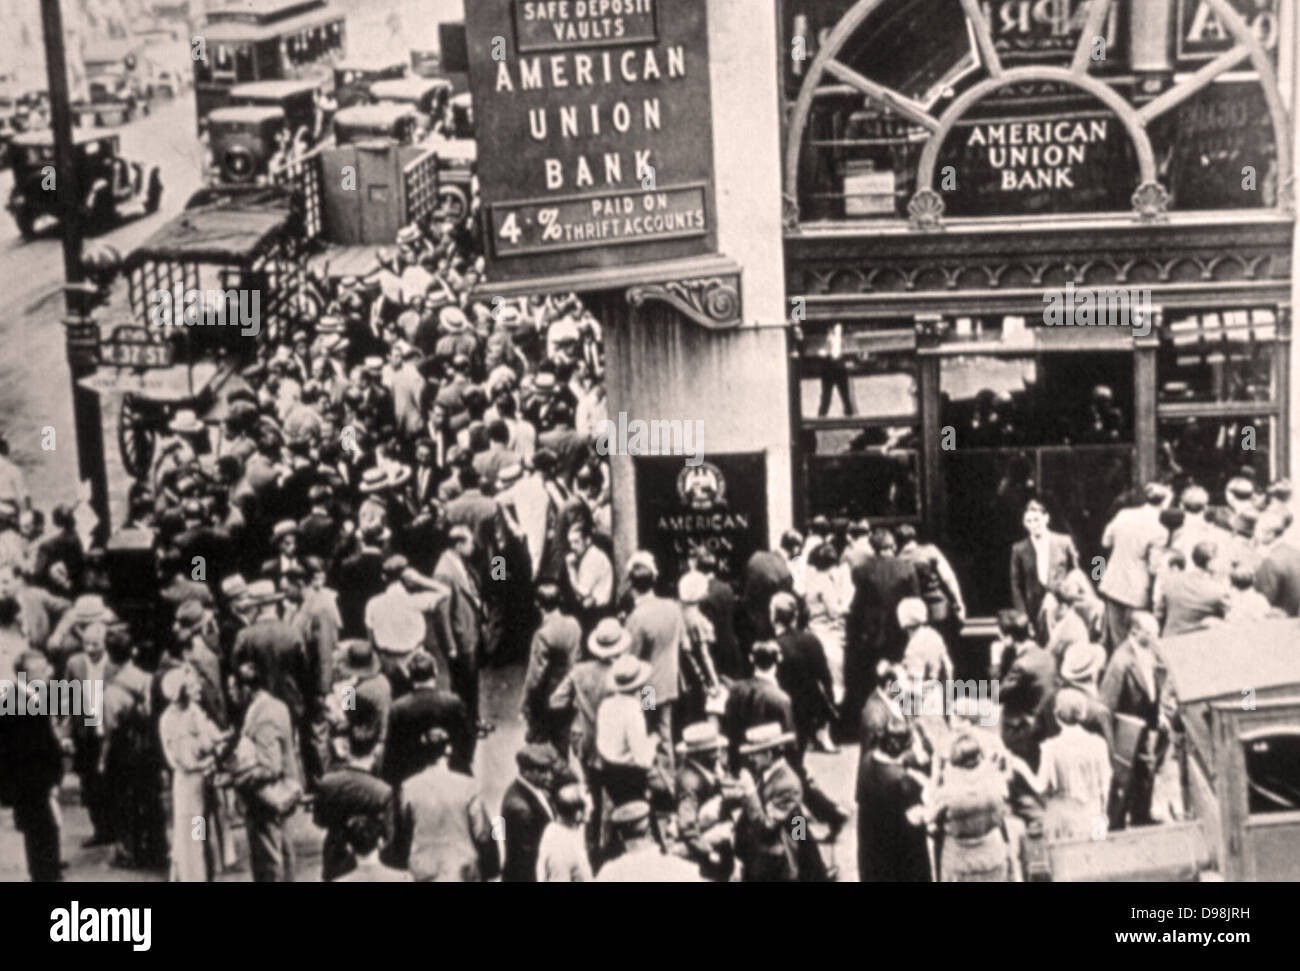 The American Union Bank collapses as crowds gather in a 'run on the bank' in the Great Depression. 1931 - Stock Image